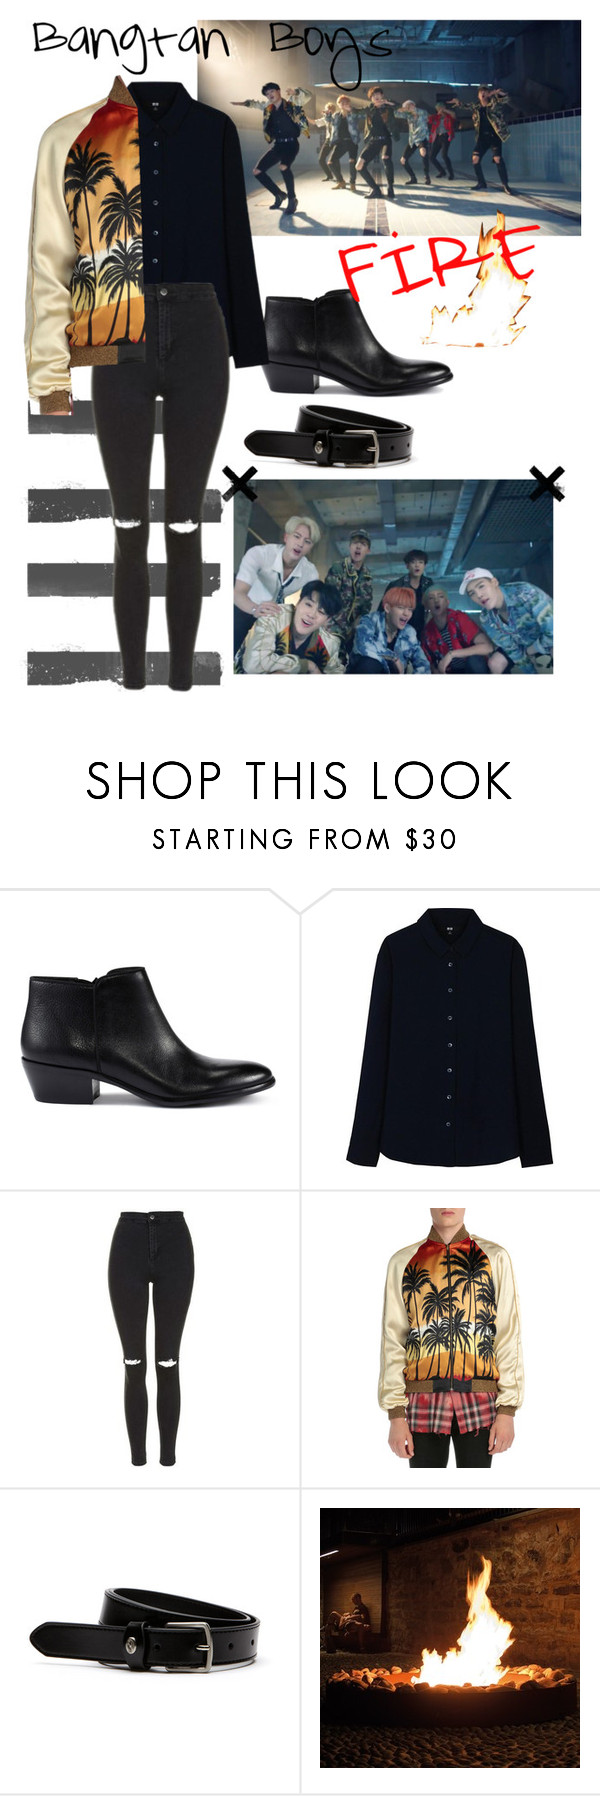 """Bts ""Fire"" Jimin Inspired Outfit"" by daisslovebeauty ❤ liked on Polyvore featuring Sam Edelman, Uniqlo, Topshop, Yves Saint Laurent and Lacoste"